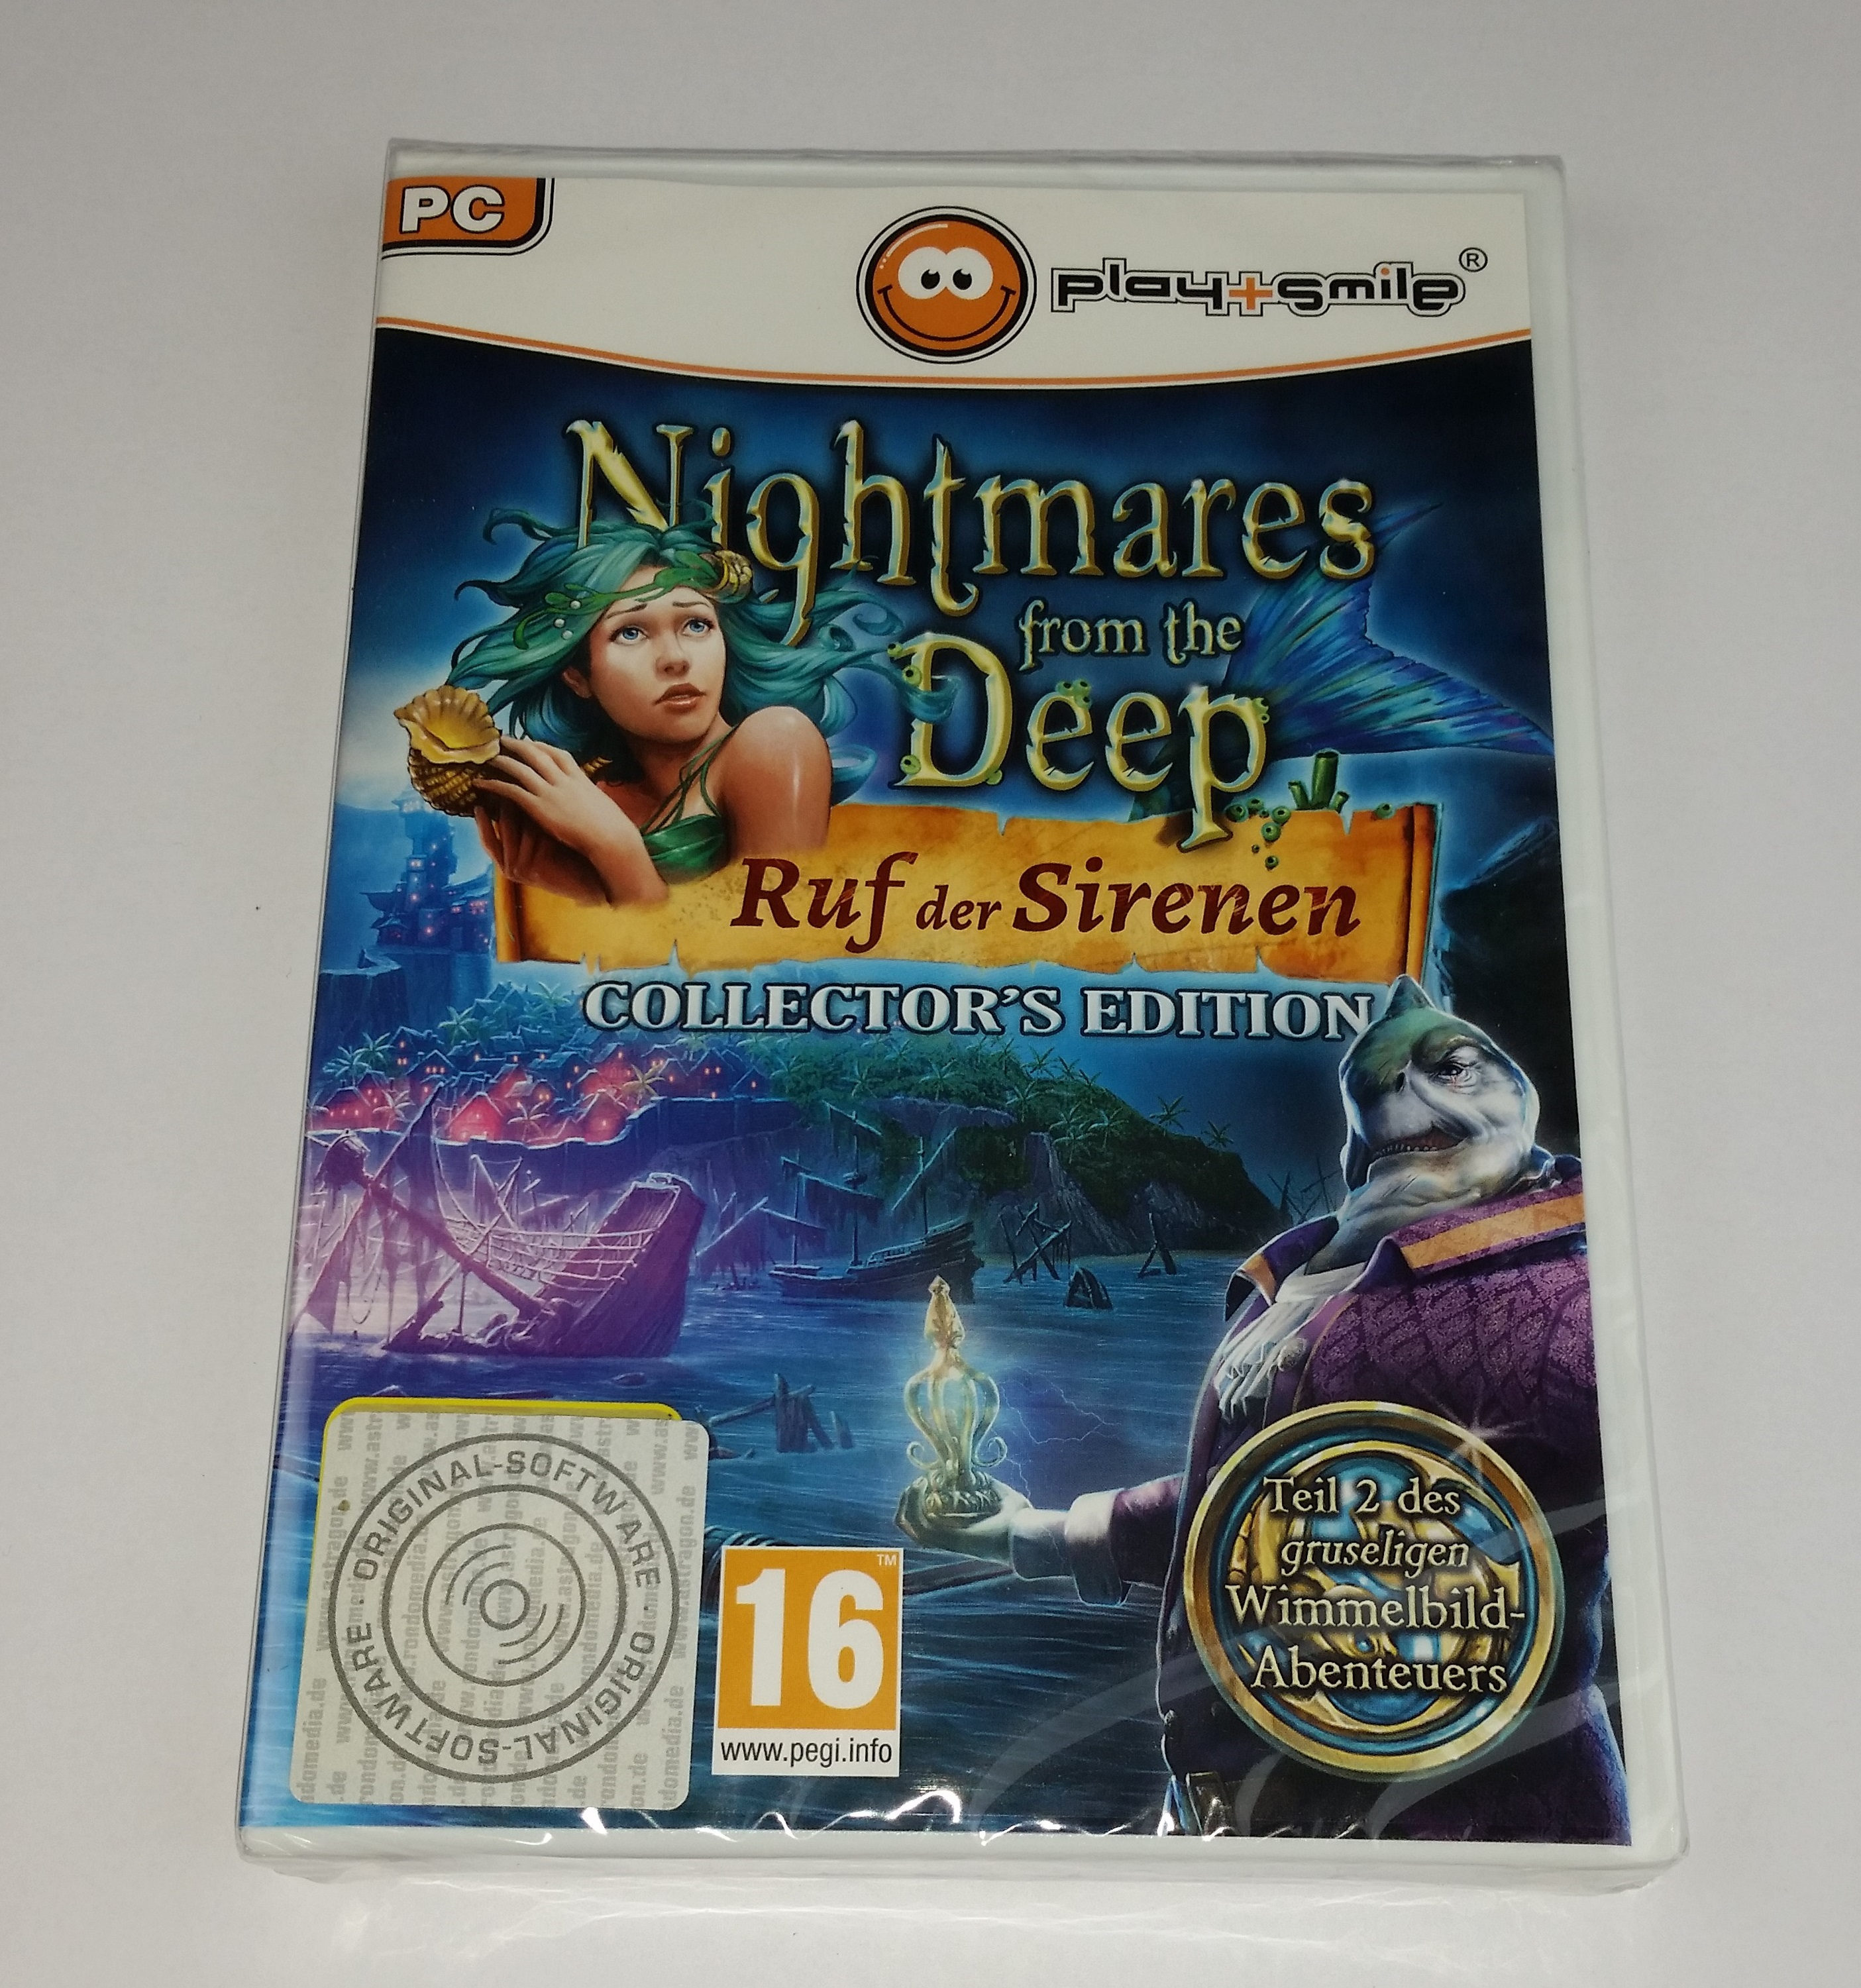 Nightmares   from the Deep: Ruf der Sirenen (Collectors Edition)